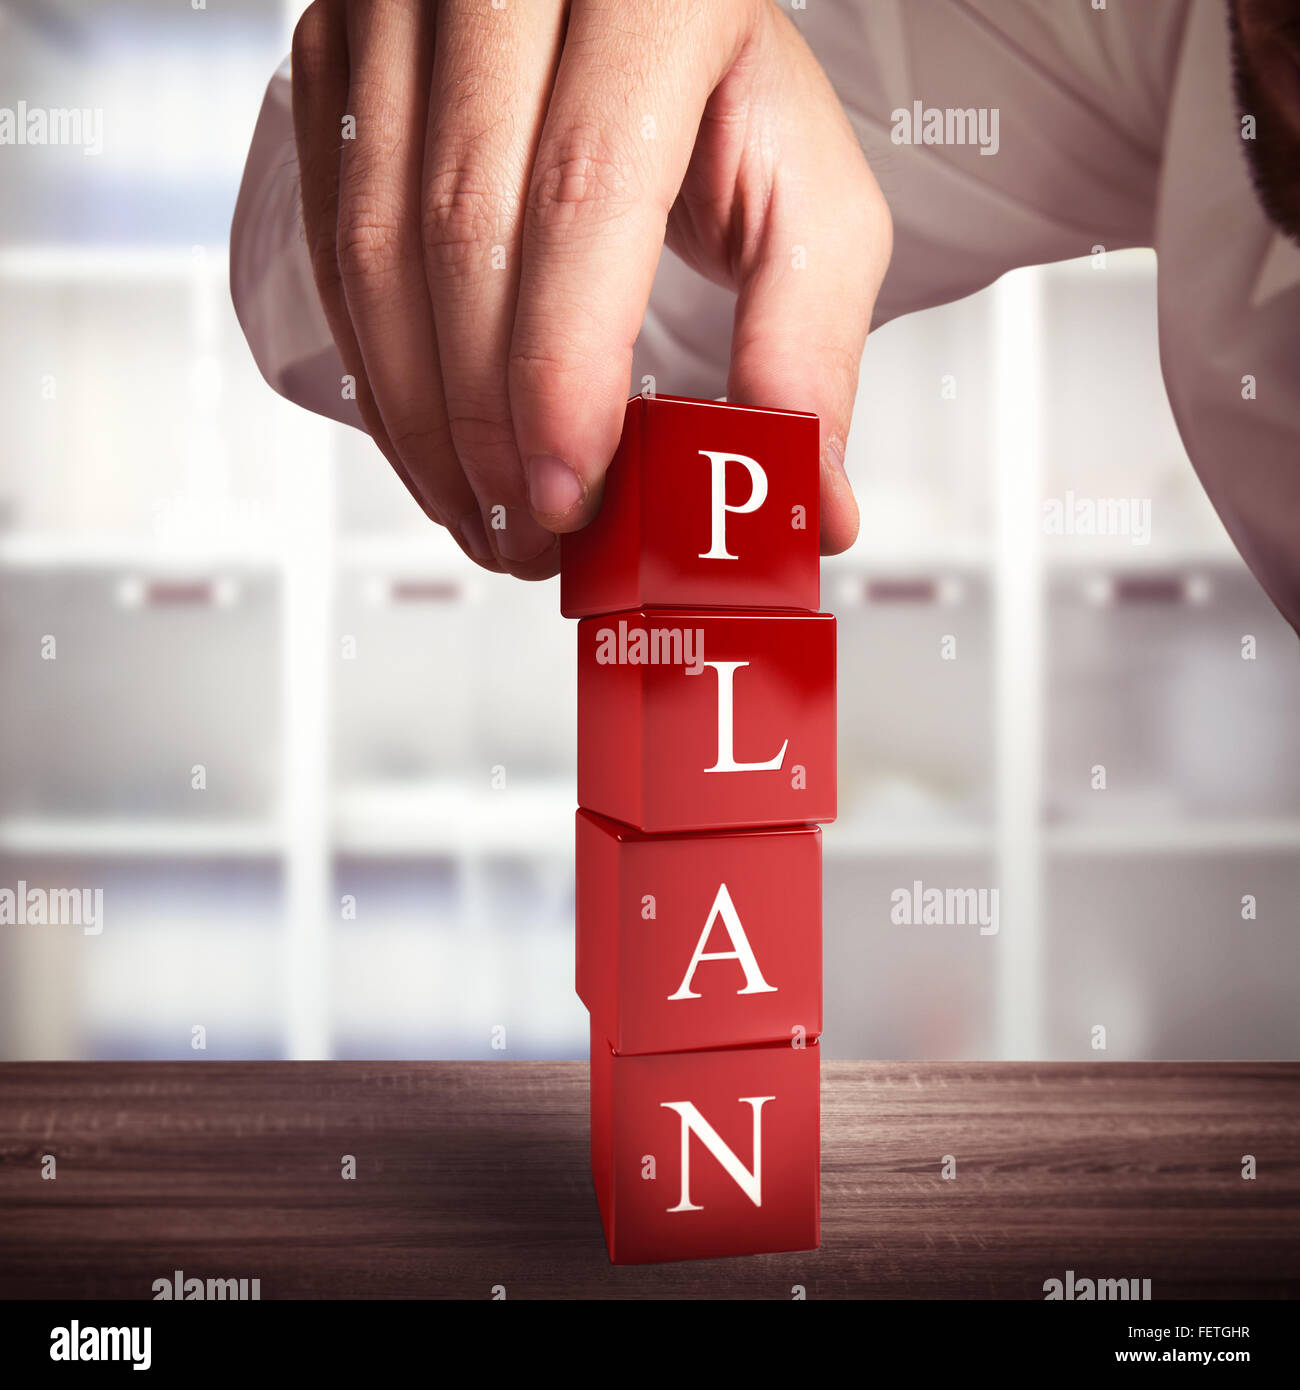 Building a plan - Stock Image